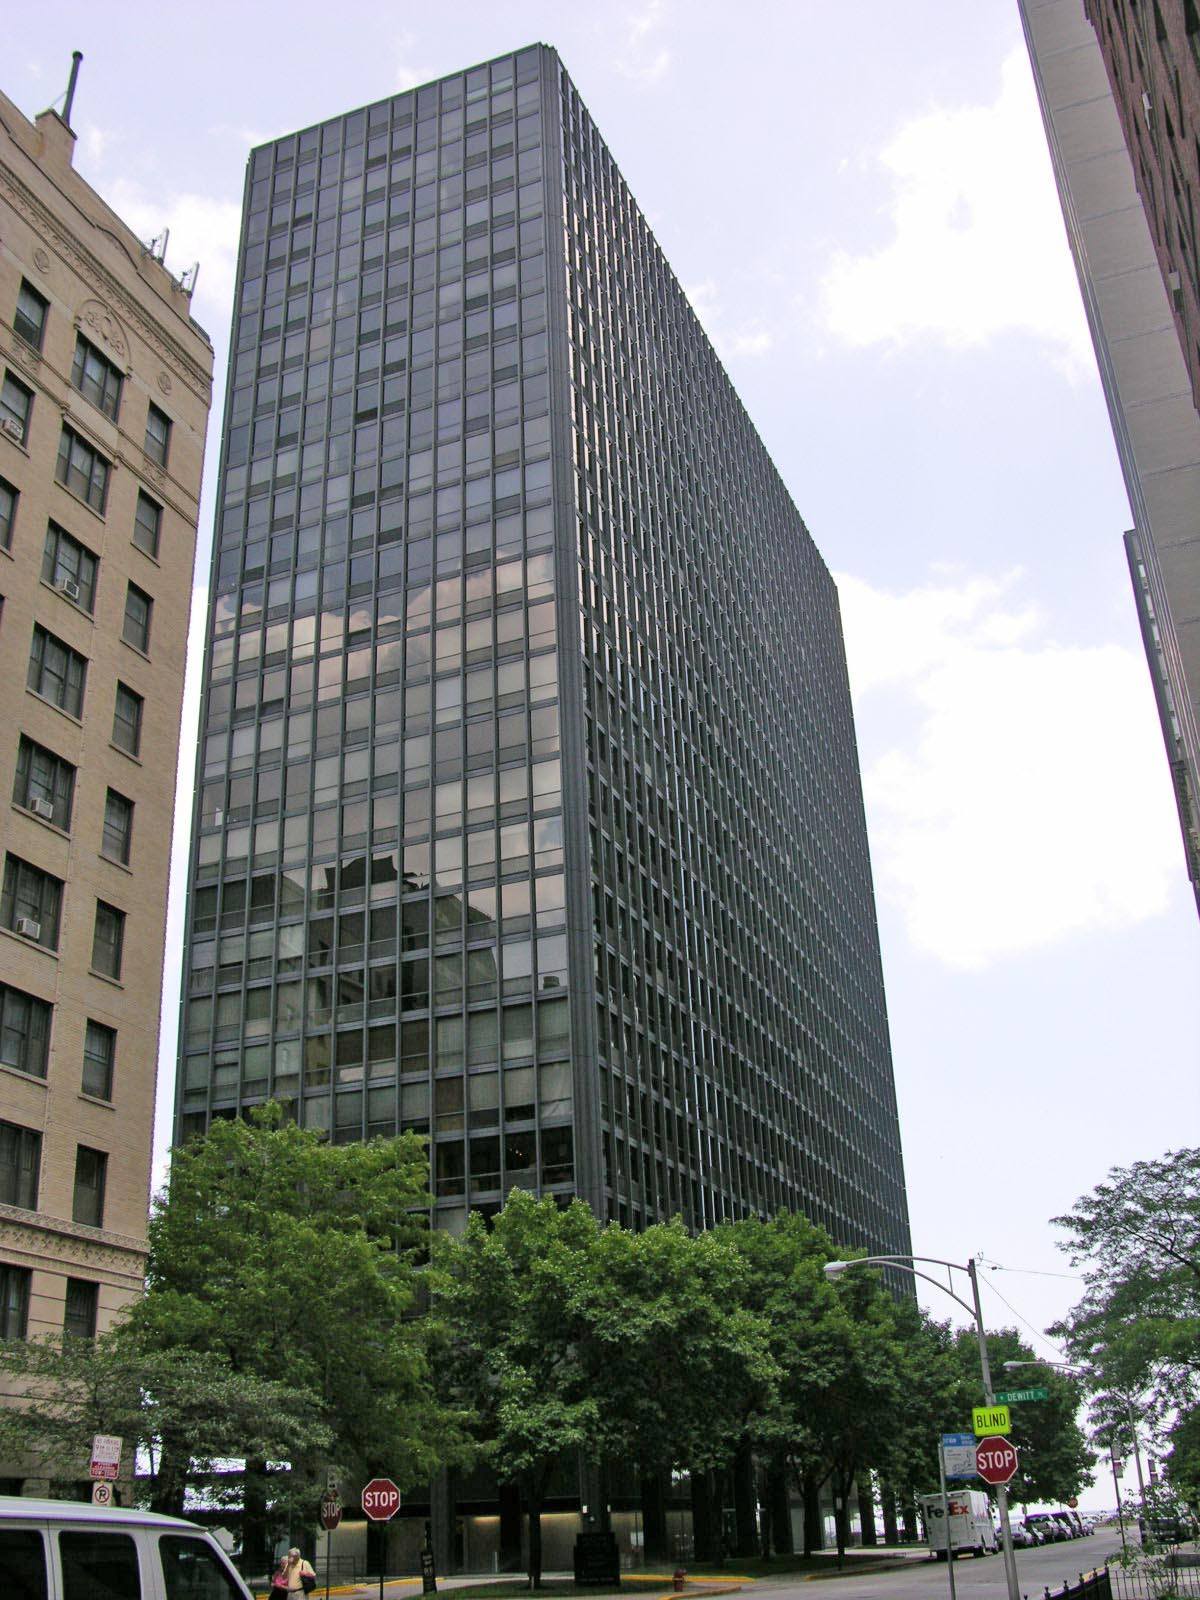 900 North Lake Shore Drive, Chicago, Illinois